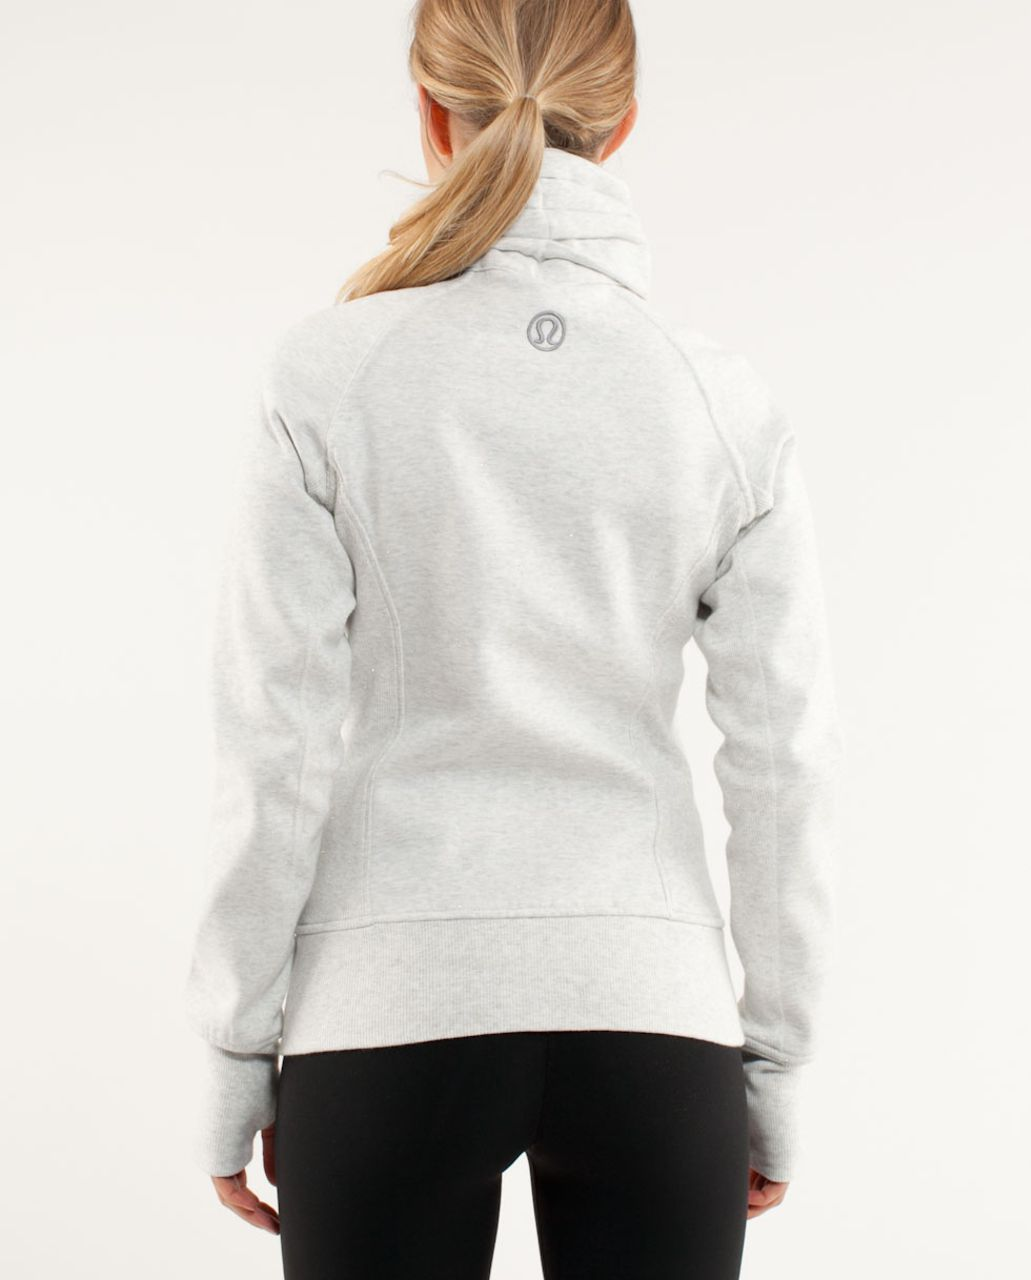 Lululemon Cuddle Up Jacket - Heathered White /  White